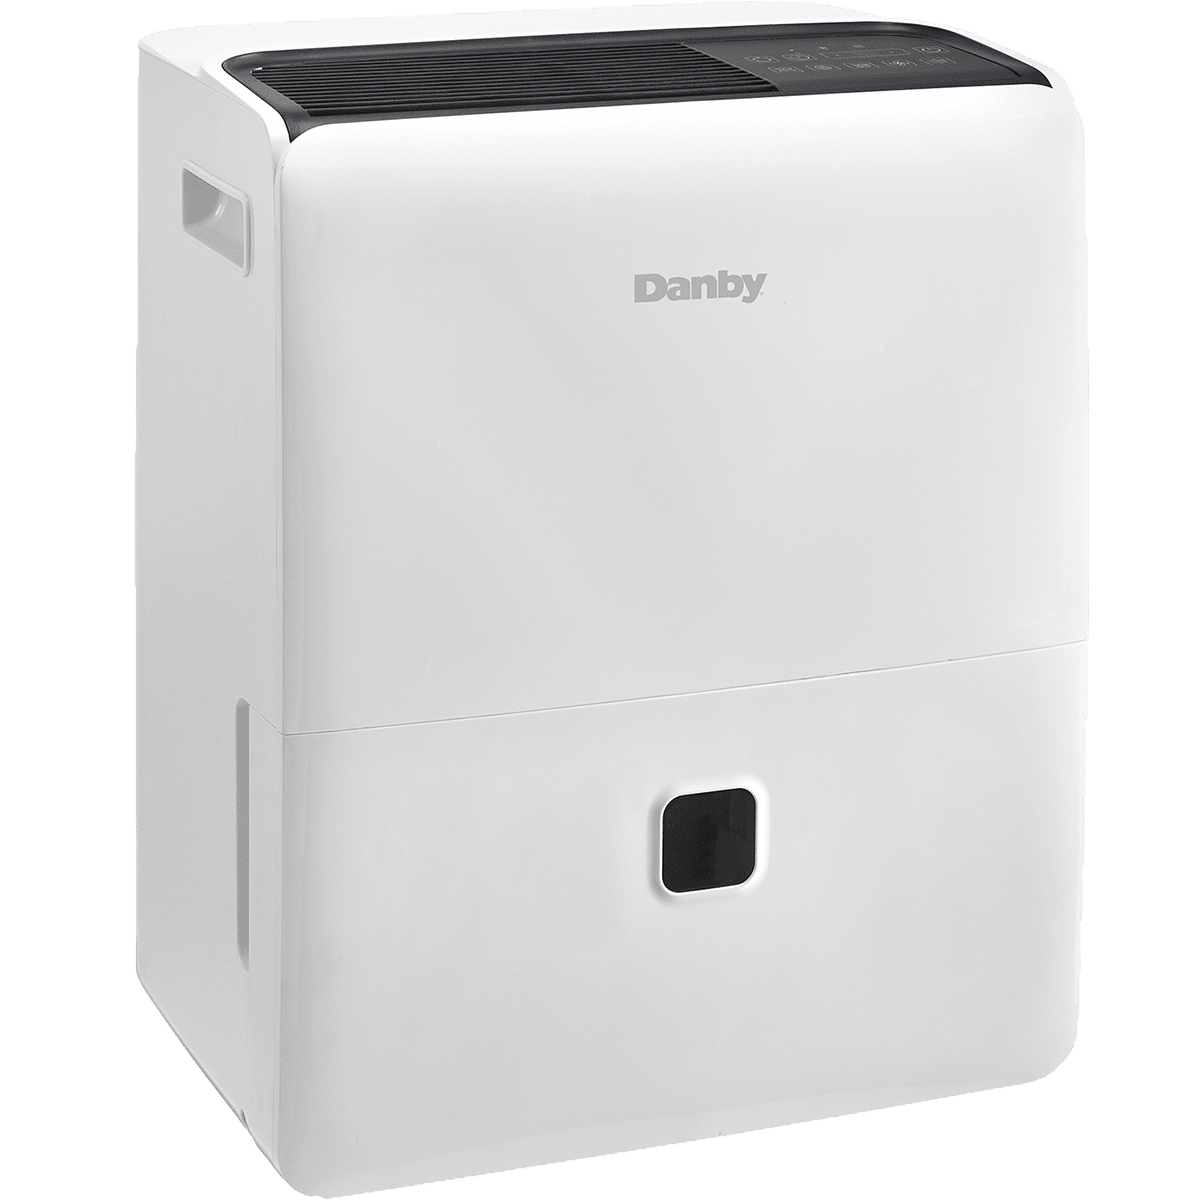 Danby 95-Pint Dehumidifier (DDR095BDPWDB) - Right Angle